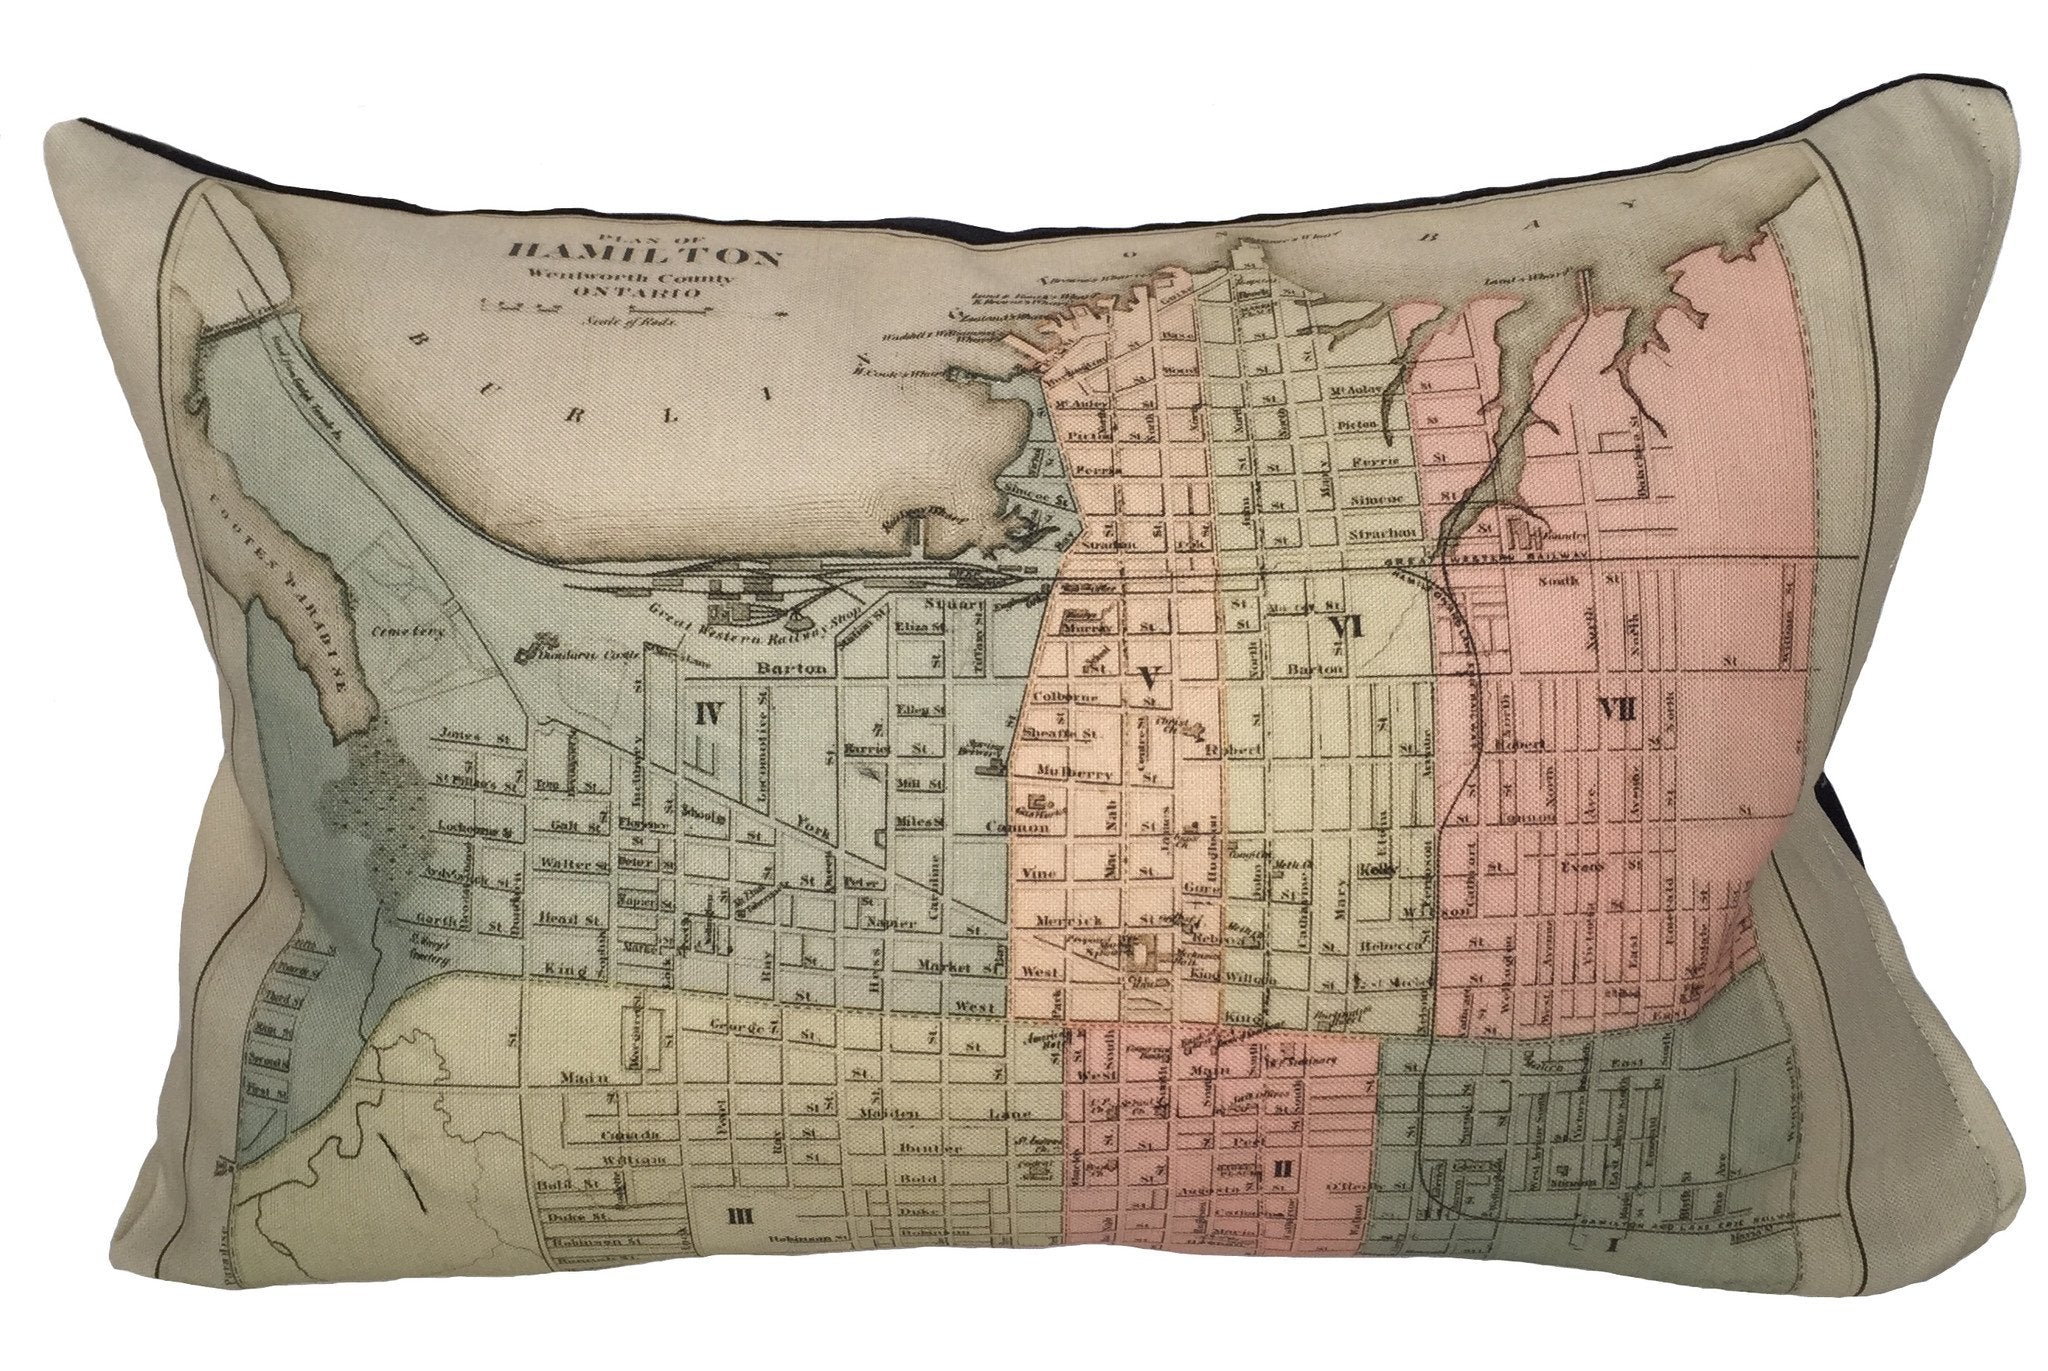 City of Hamilton Vintage Map Pillow - Vintage Map Co.